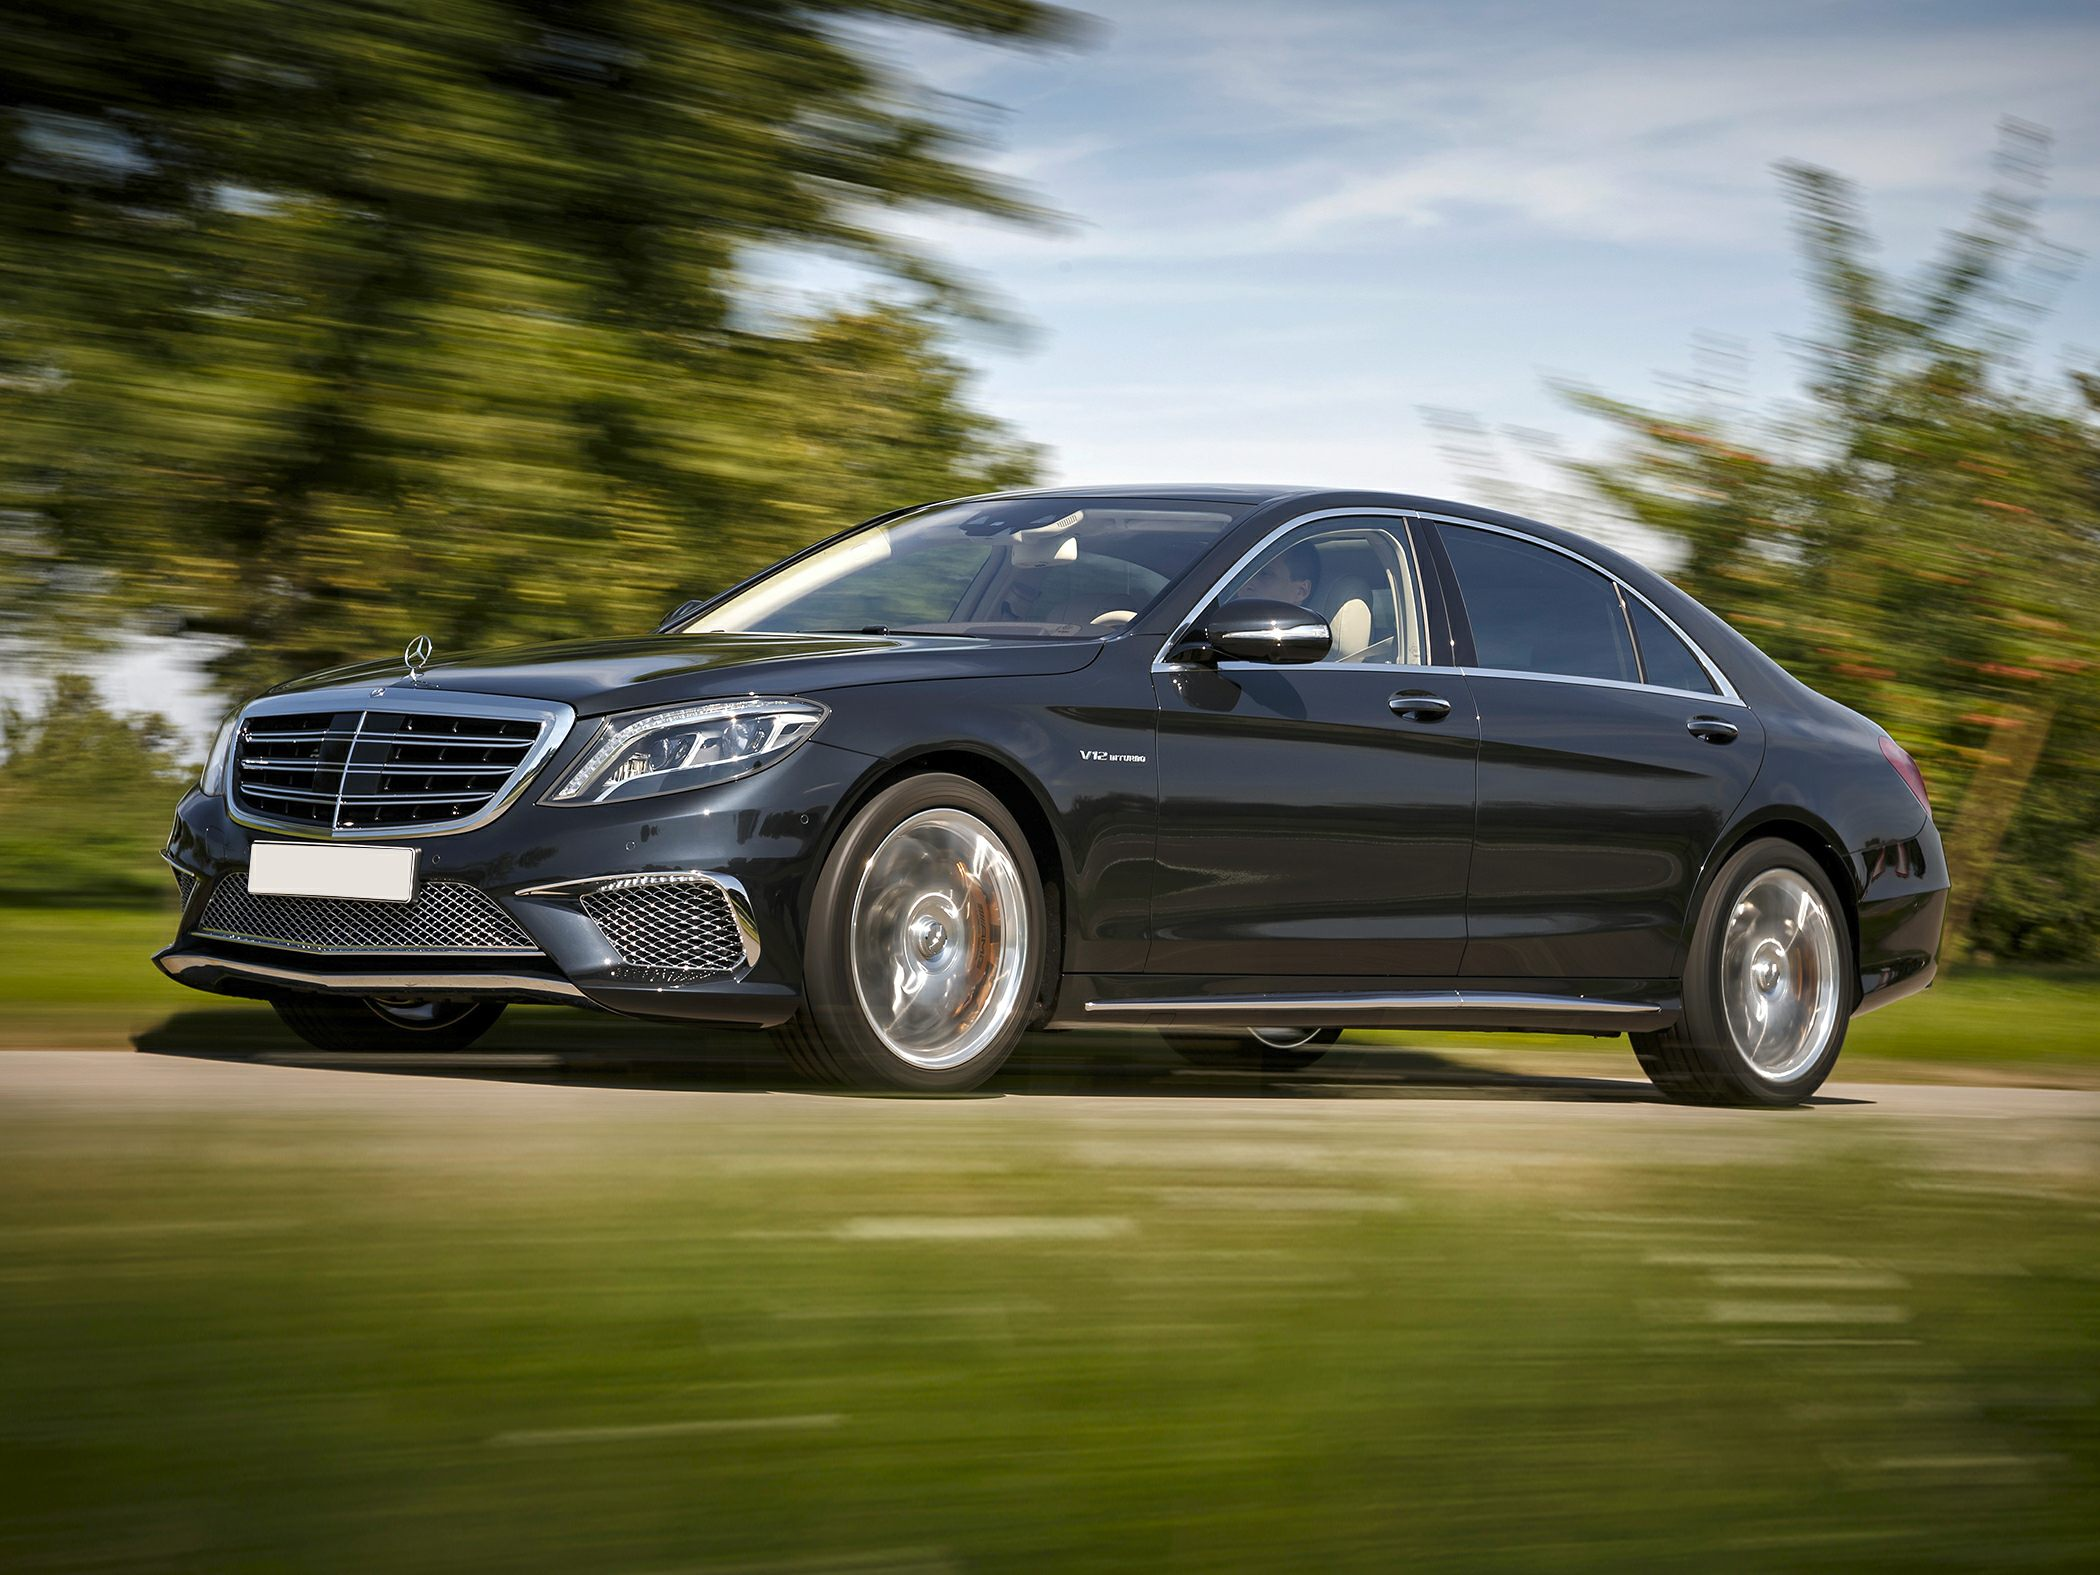 2016 mercedes benz s65 amg styles features highlights for Mercedes benz s65 amg 2016